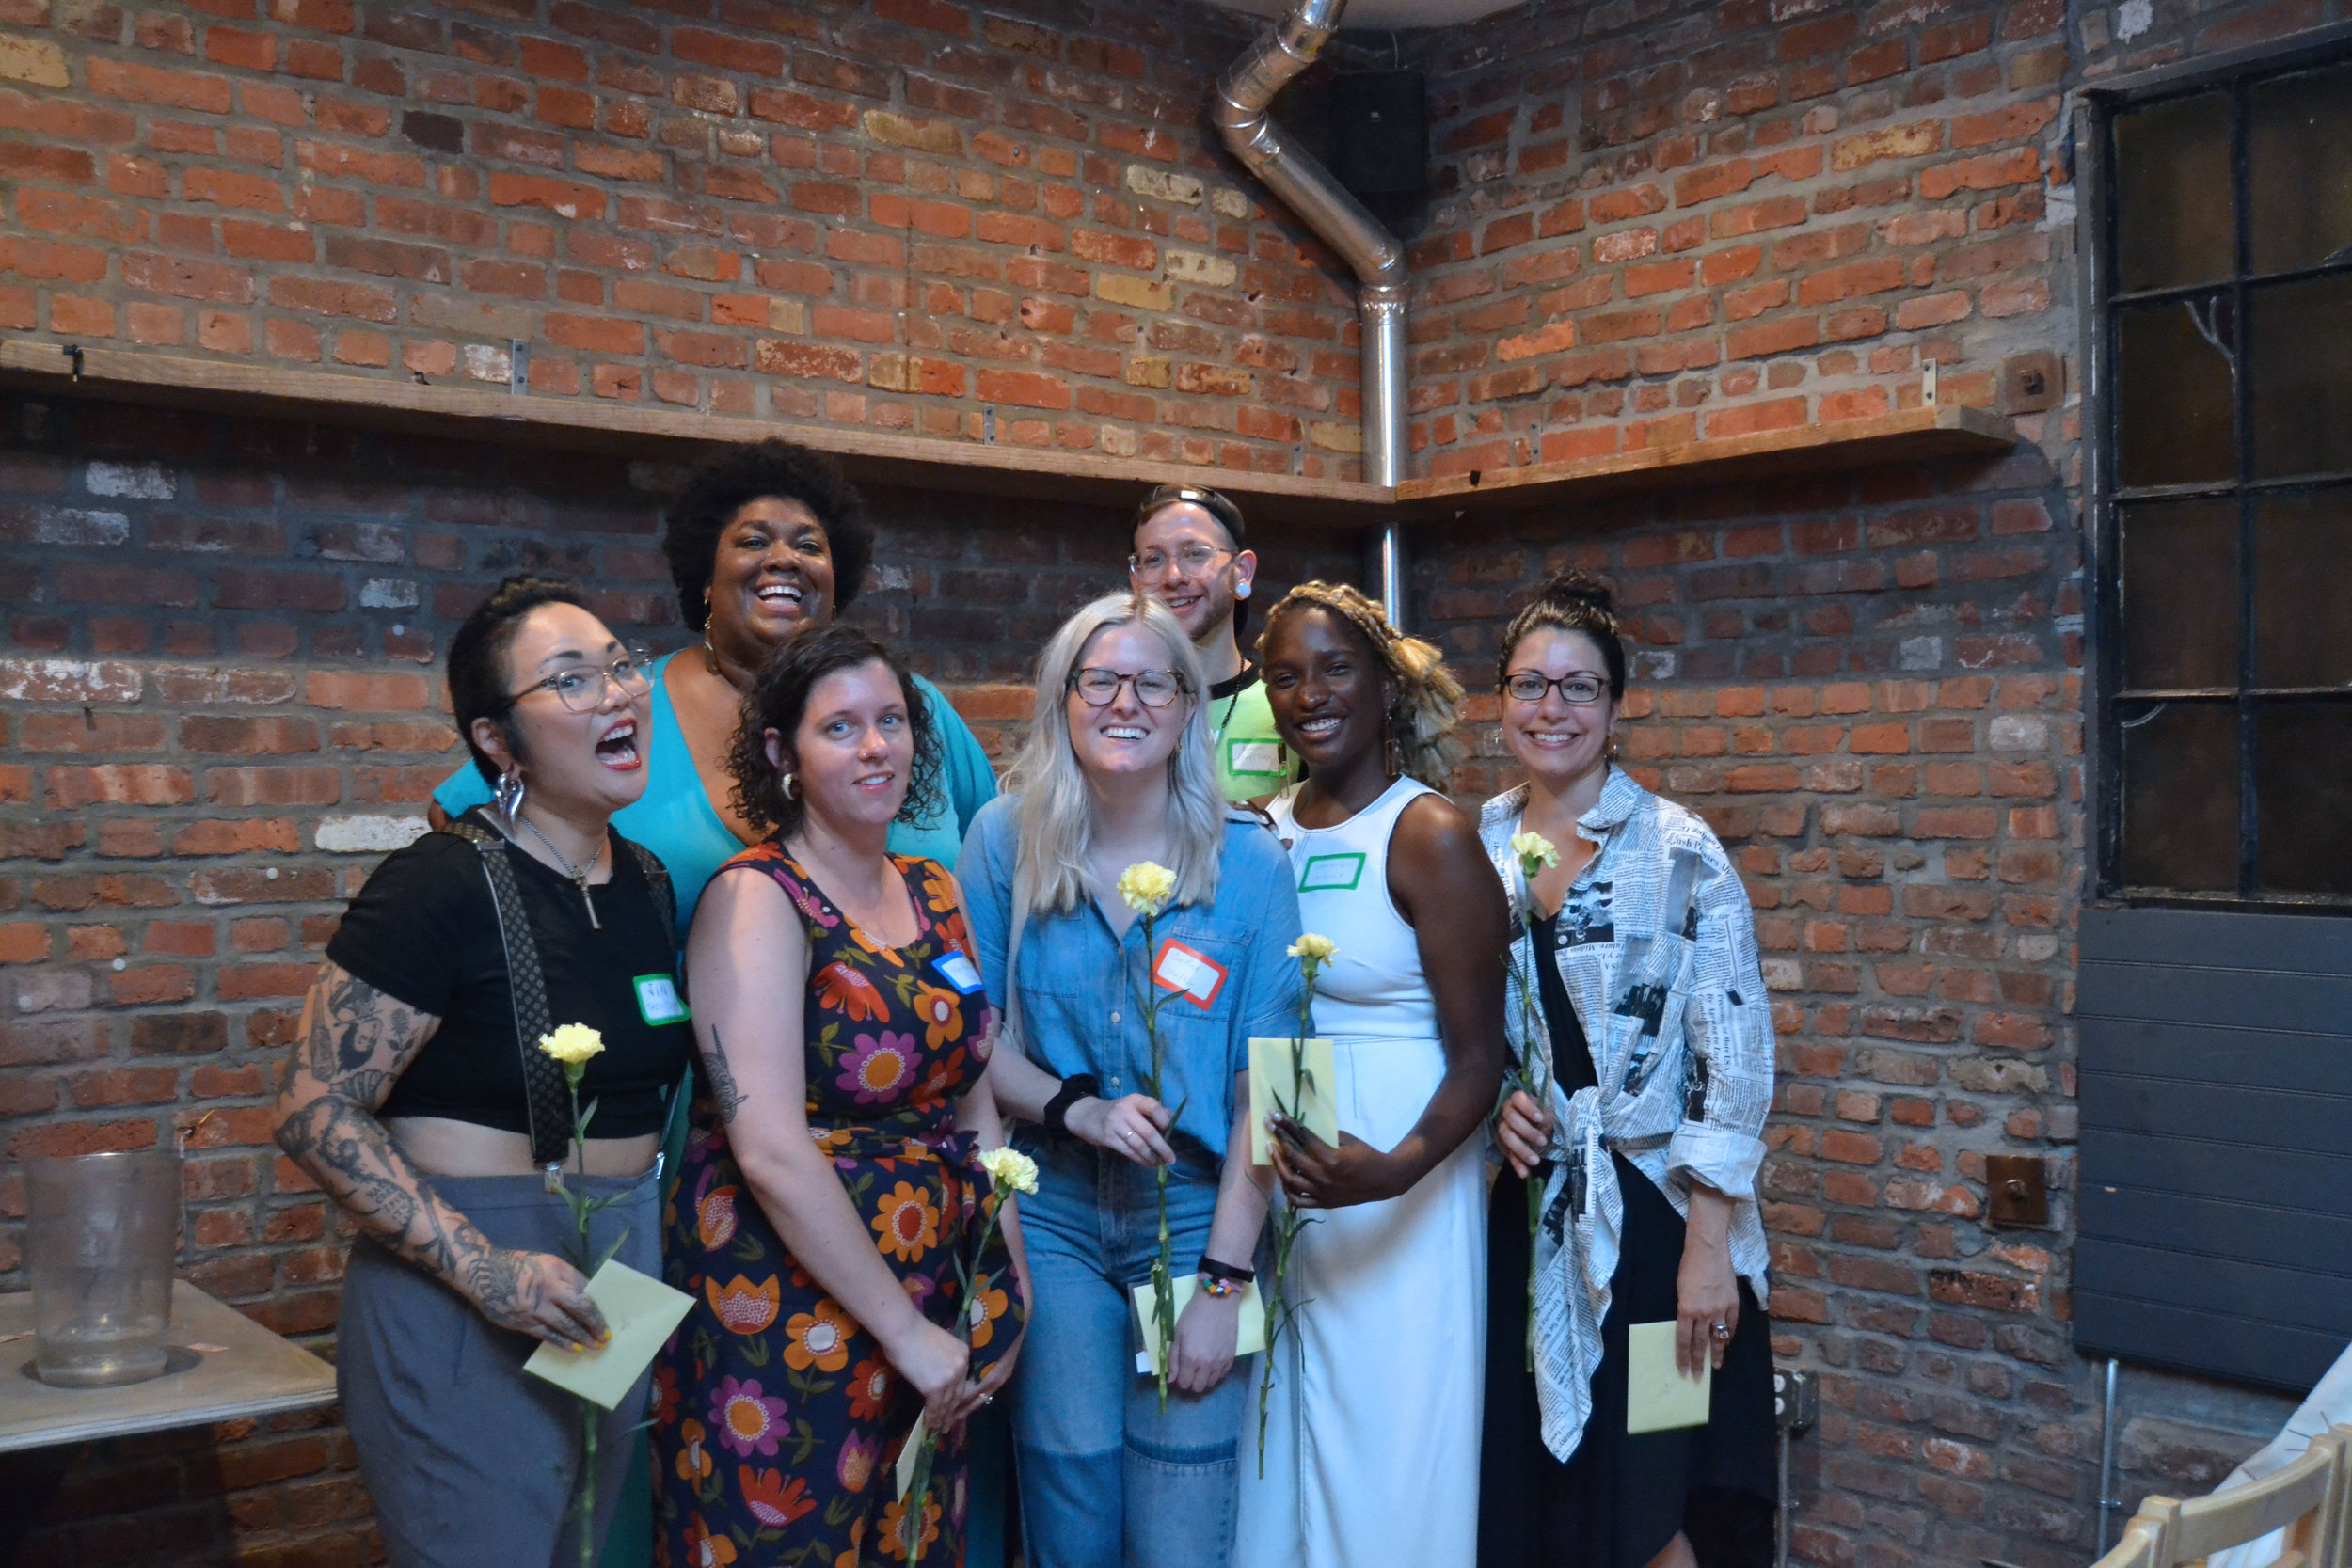 Our storytellers from left to right - Jin, Cathleen, Mary, Caroline, Avalon, Dominique, and Zoe (not pictured Ali Weiss and Shalewa Sharpe)